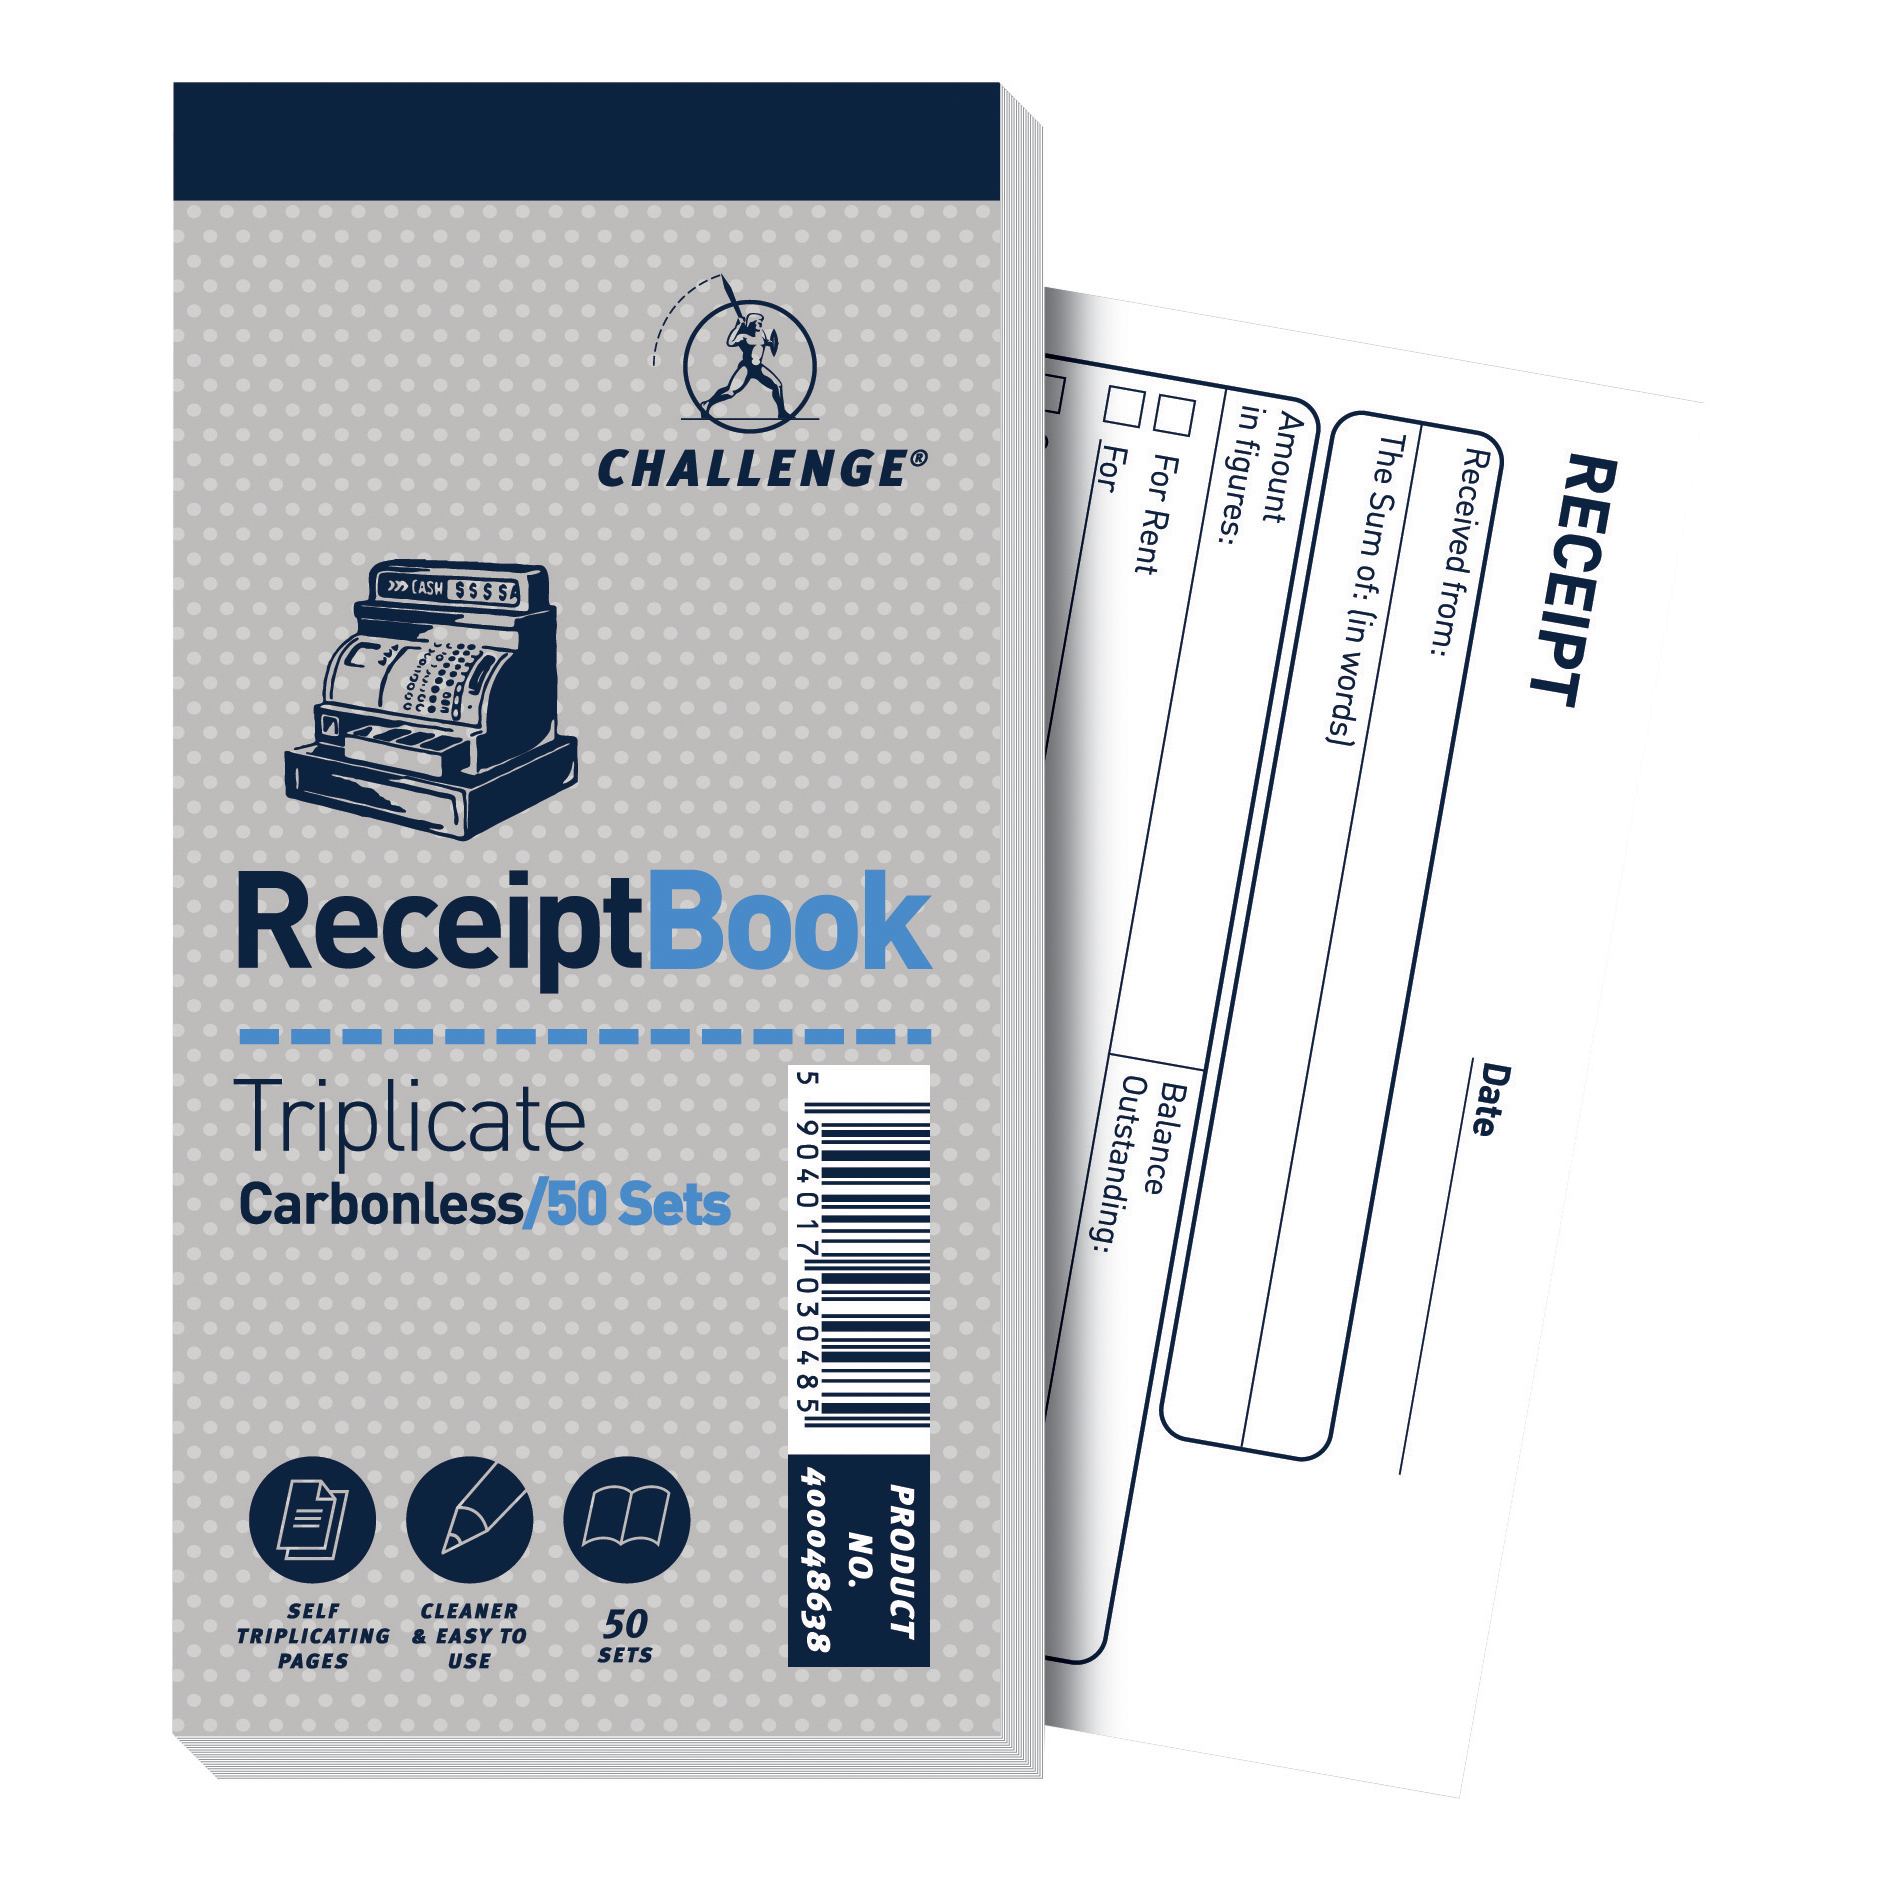 Triplicate Challenge Triplicate Book Carbonless Receipt 50 Receipts 140x70mm Ref 400048638 Pack 10